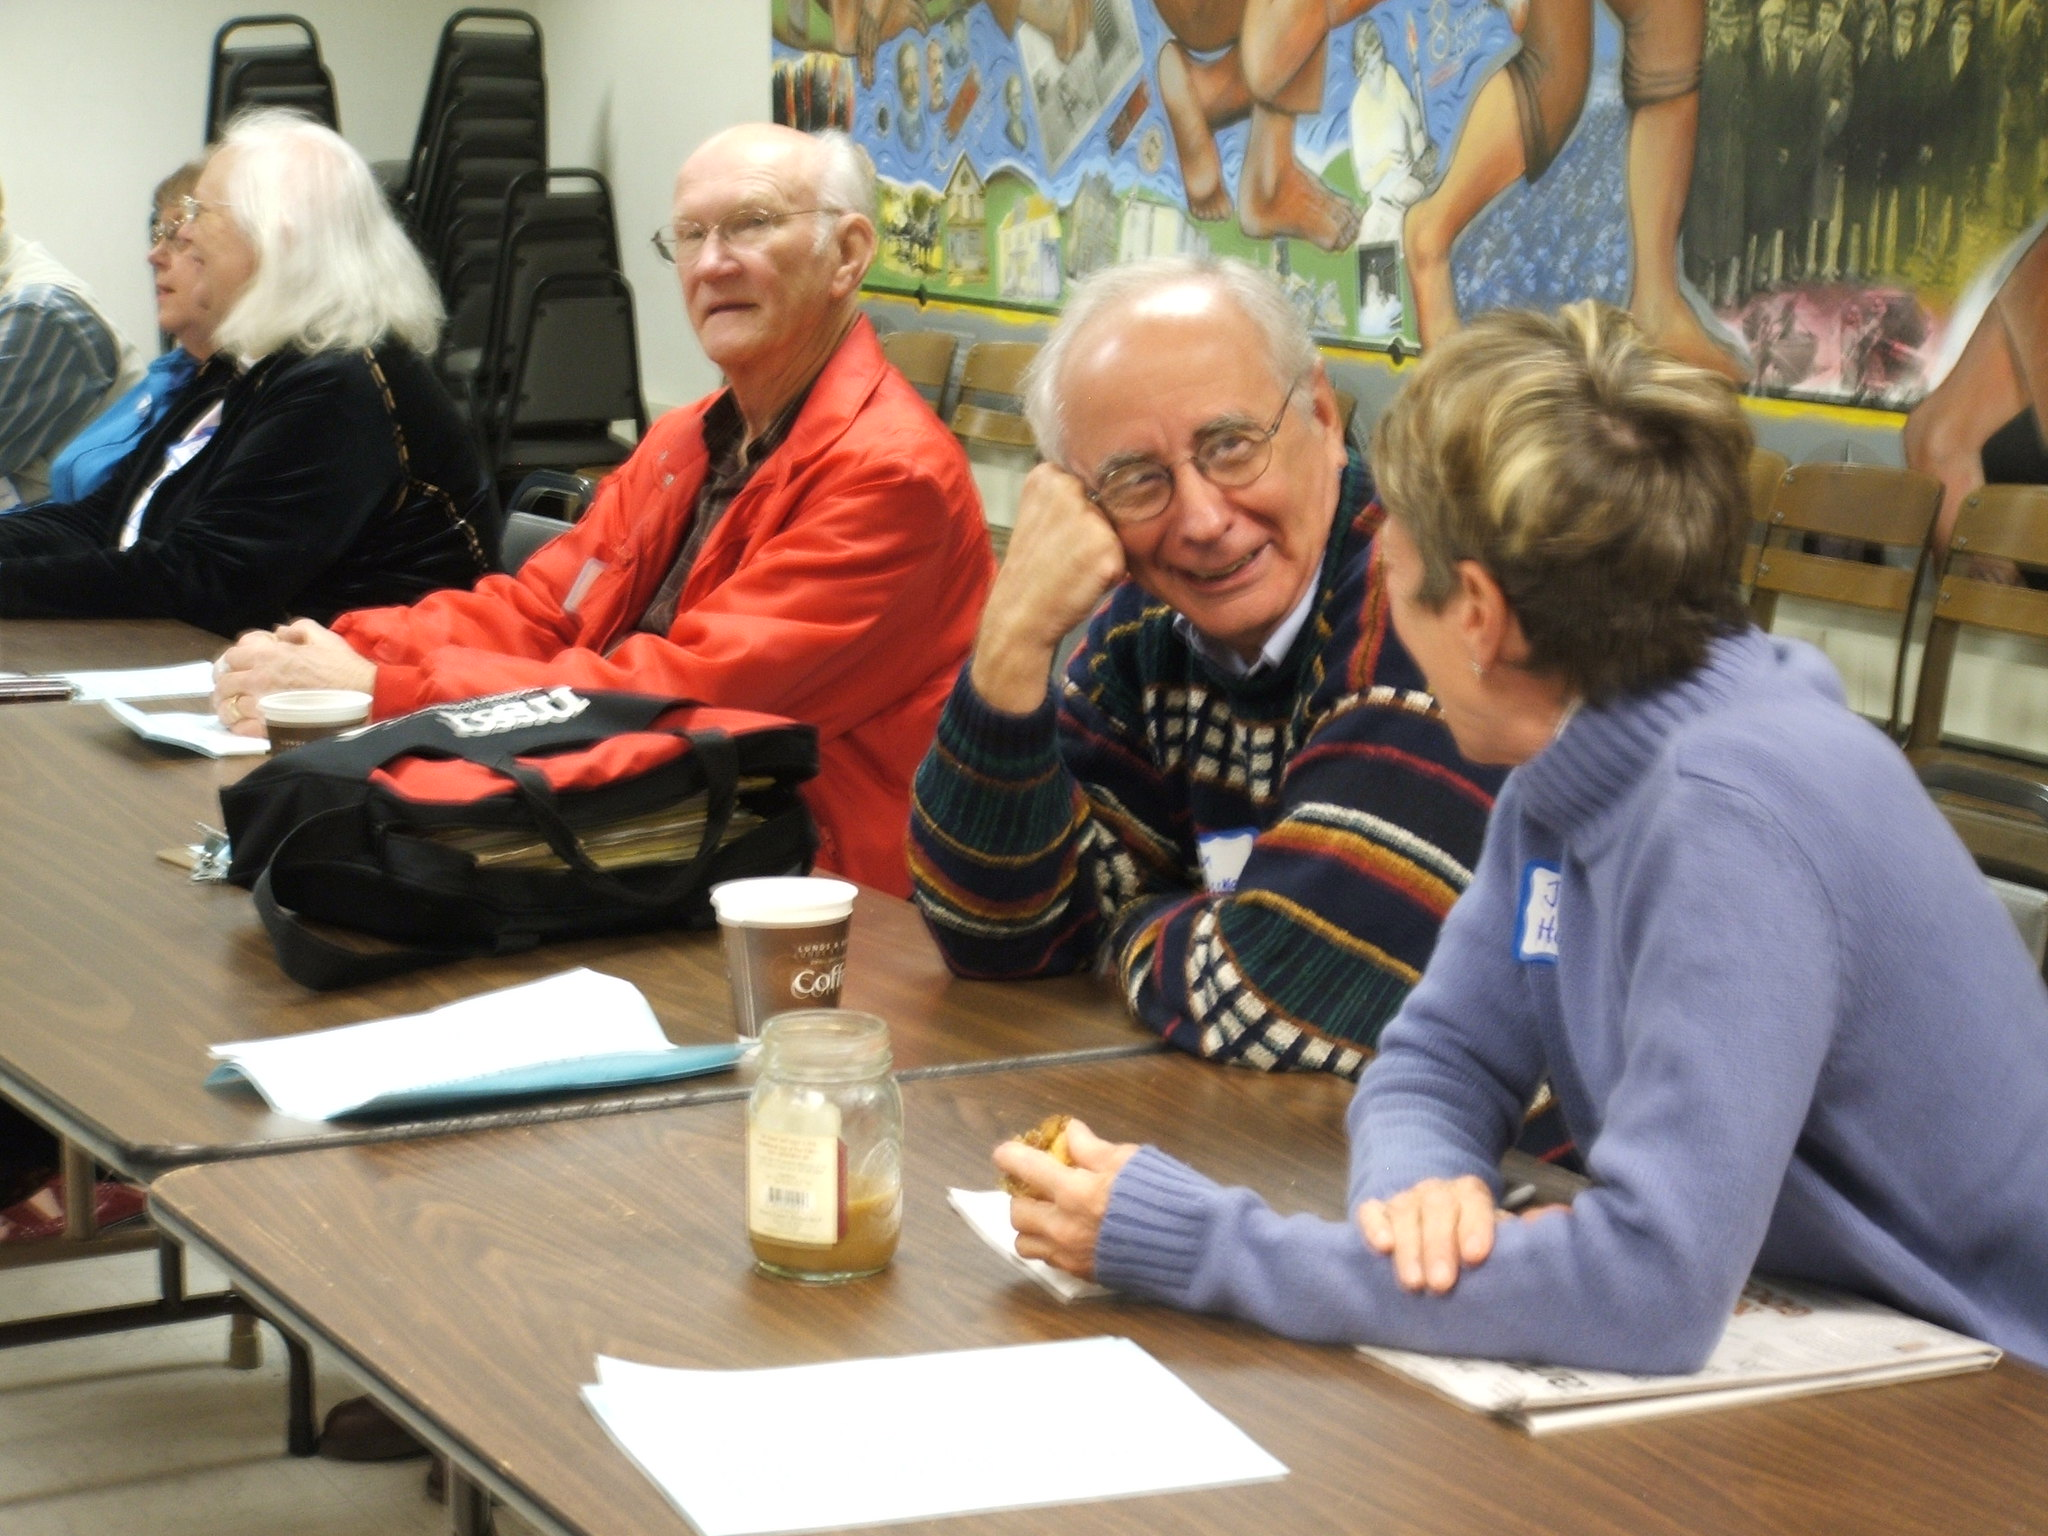 Remote Education Provides Opportunities For Retirees During COVID-19